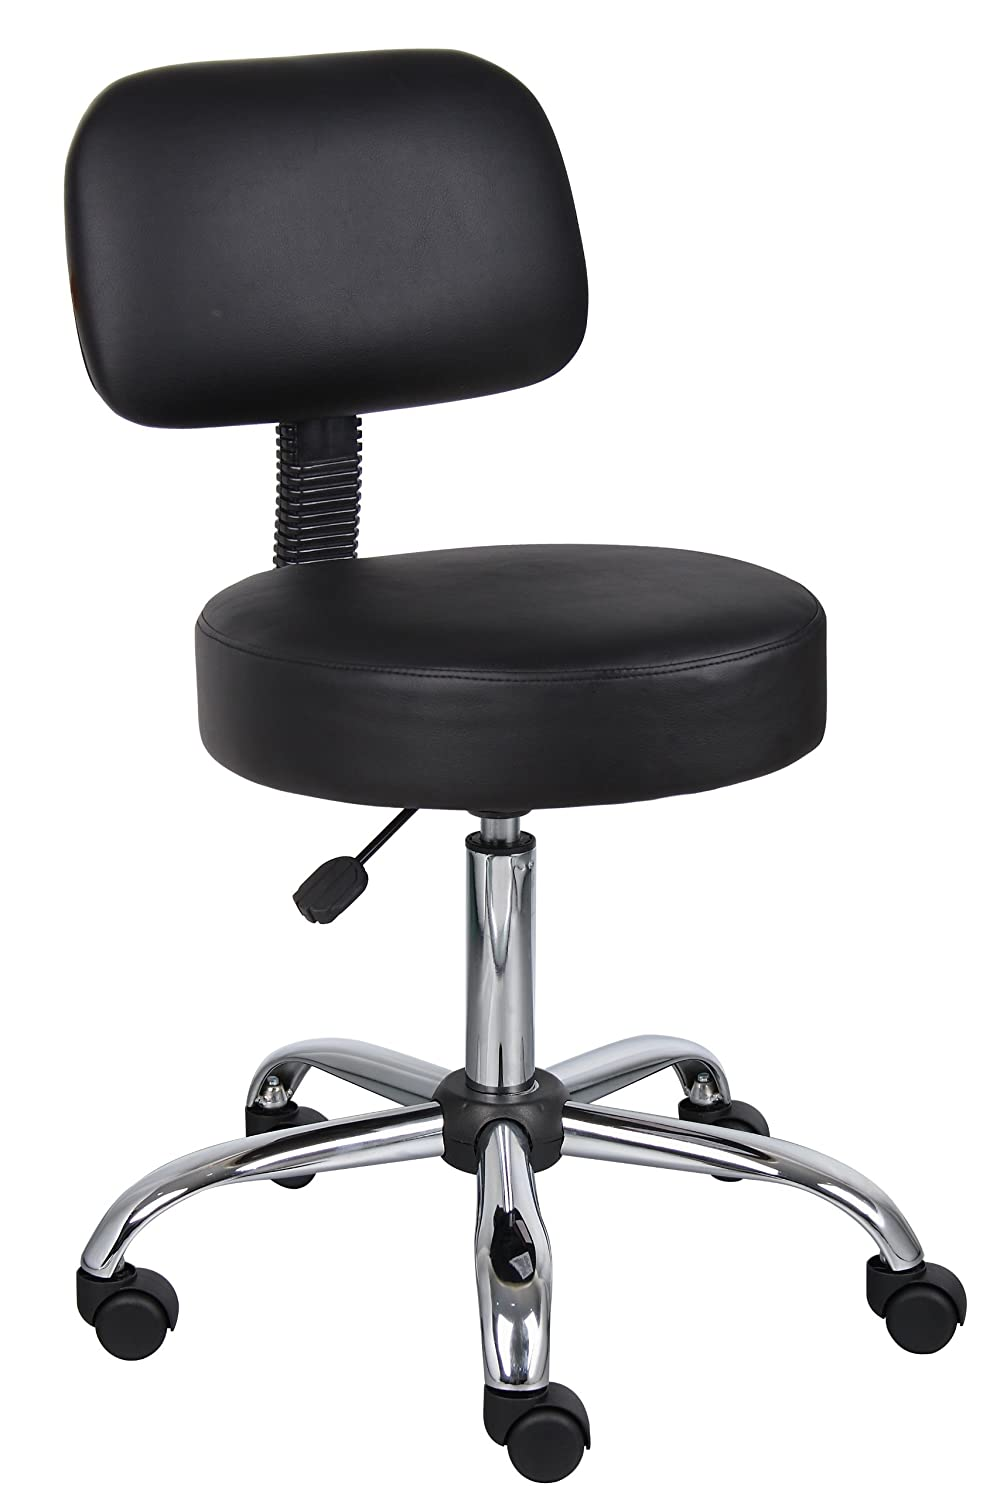 Boss Office Products B245-BK Be Well Medical Spa Stool with Back in Black Renewed